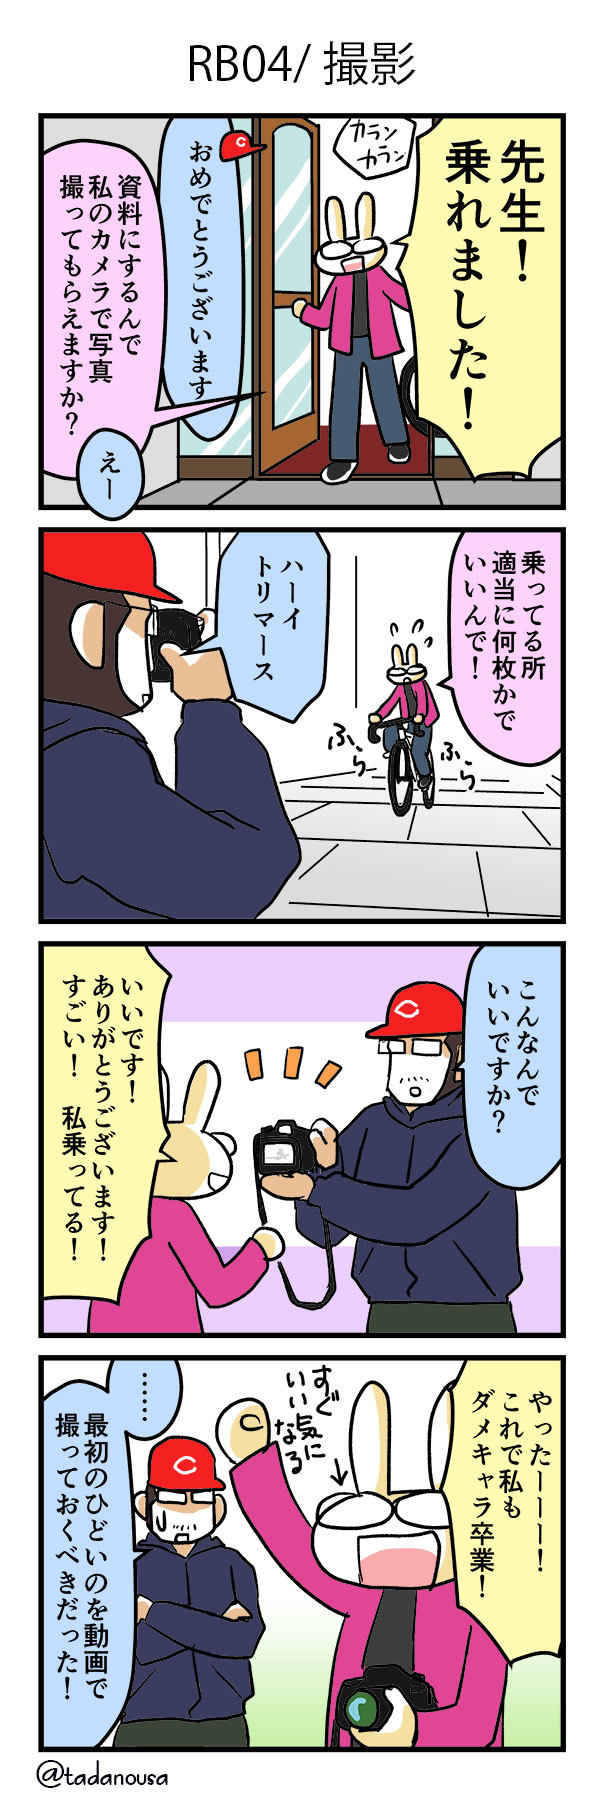 bike_4koma_road04_s.jpg